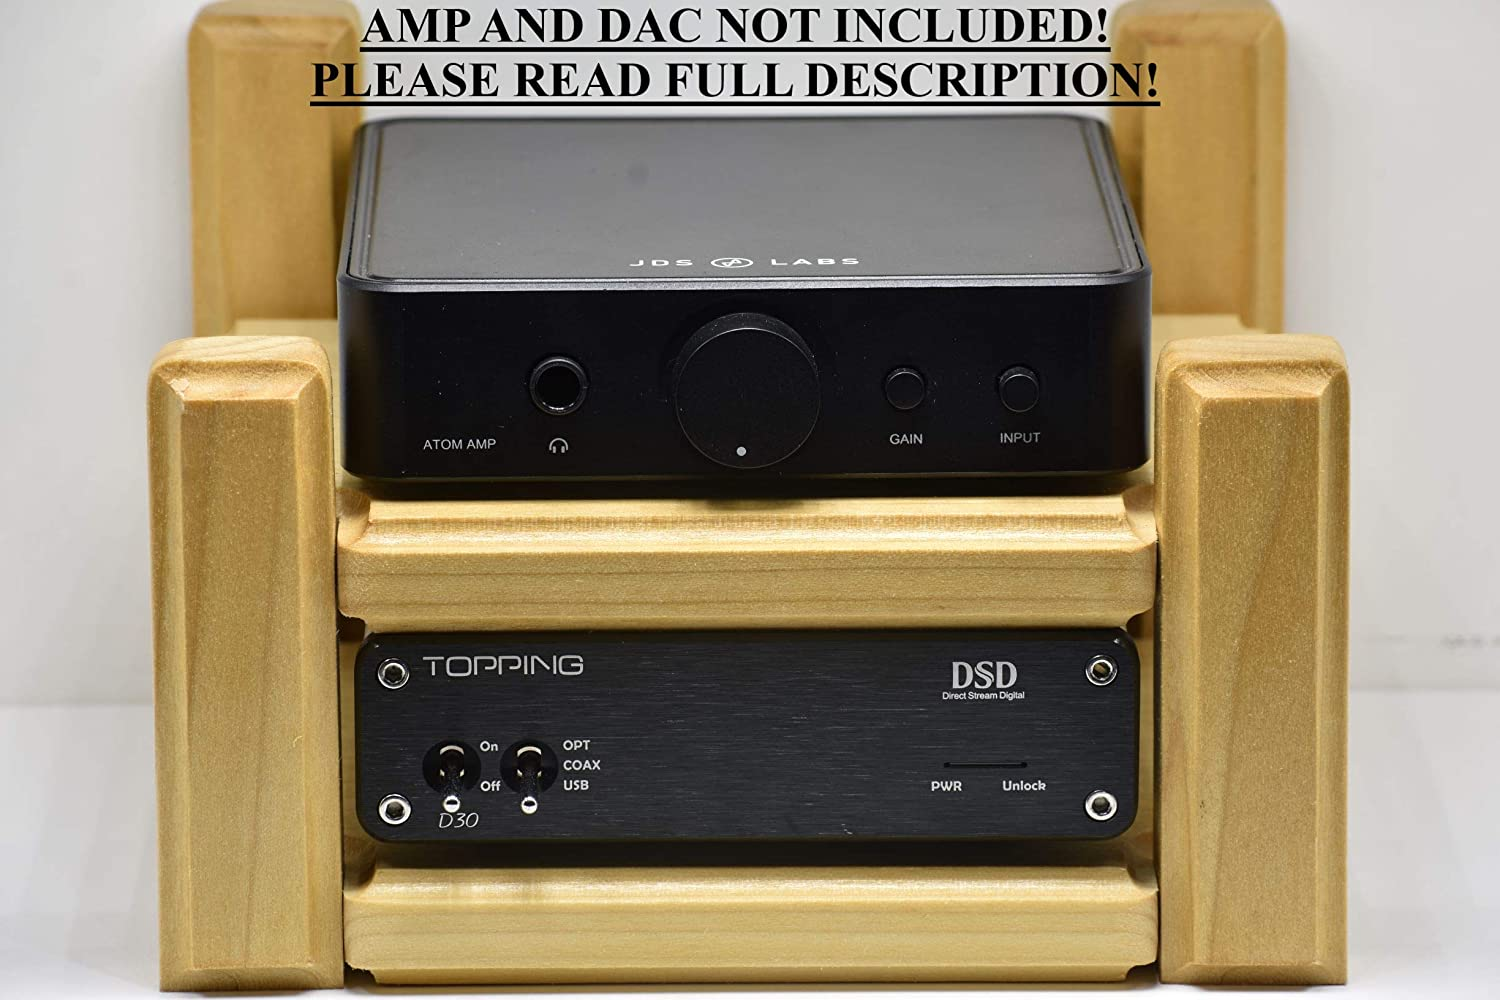 Topping Mail order D30 DAC A30 Amp stand Atom JDSLABS Easy-to-use display